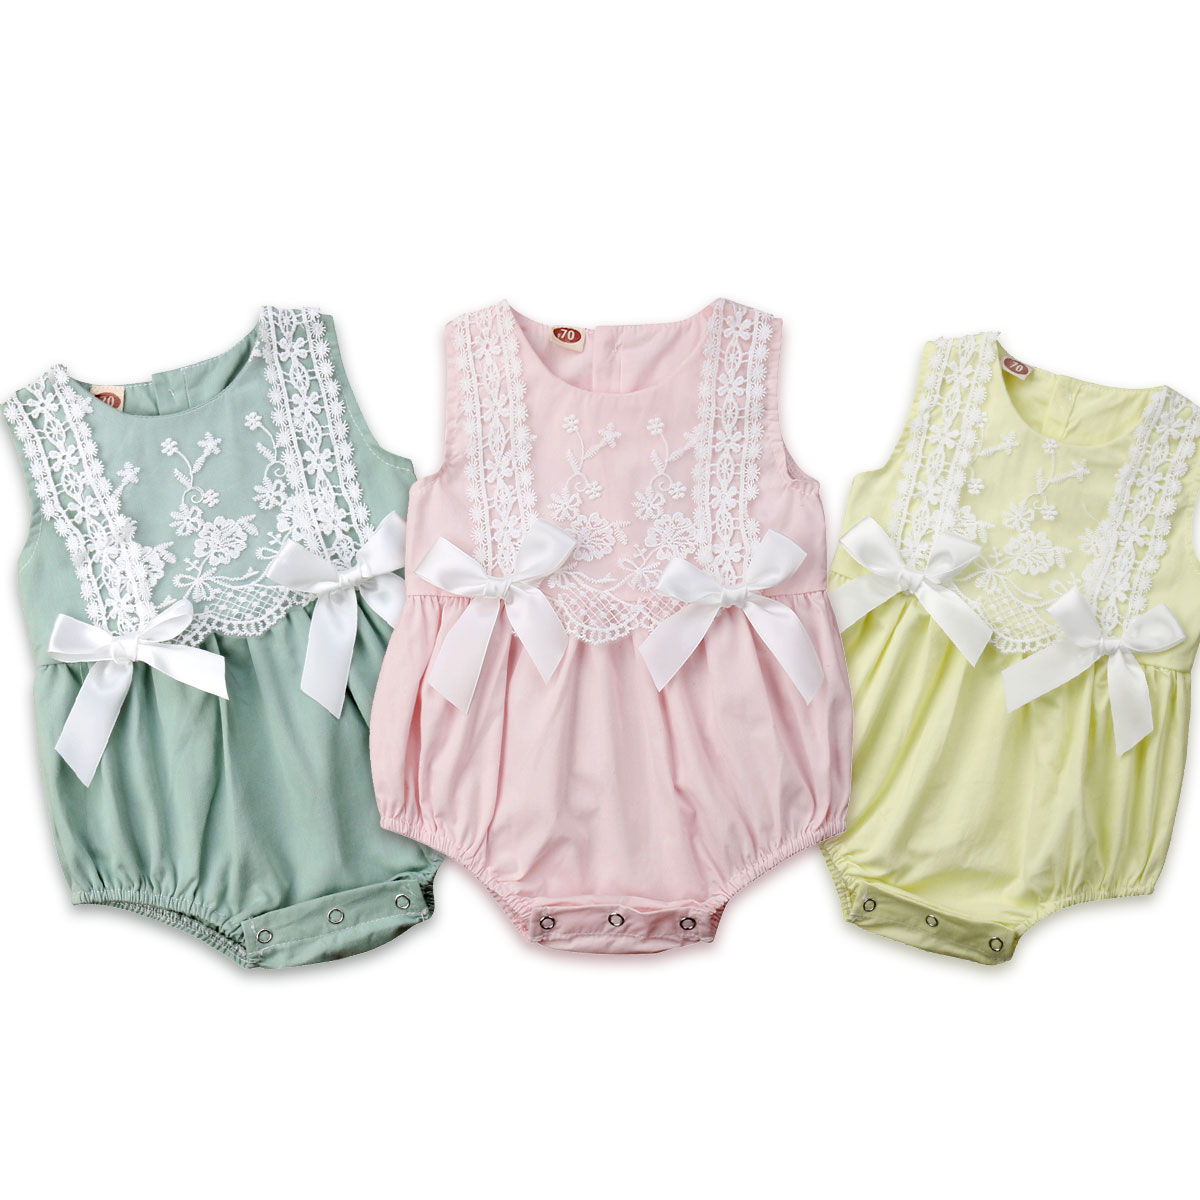 823d26966 Buy ruffle romper and get free shipping on AliExpress.com